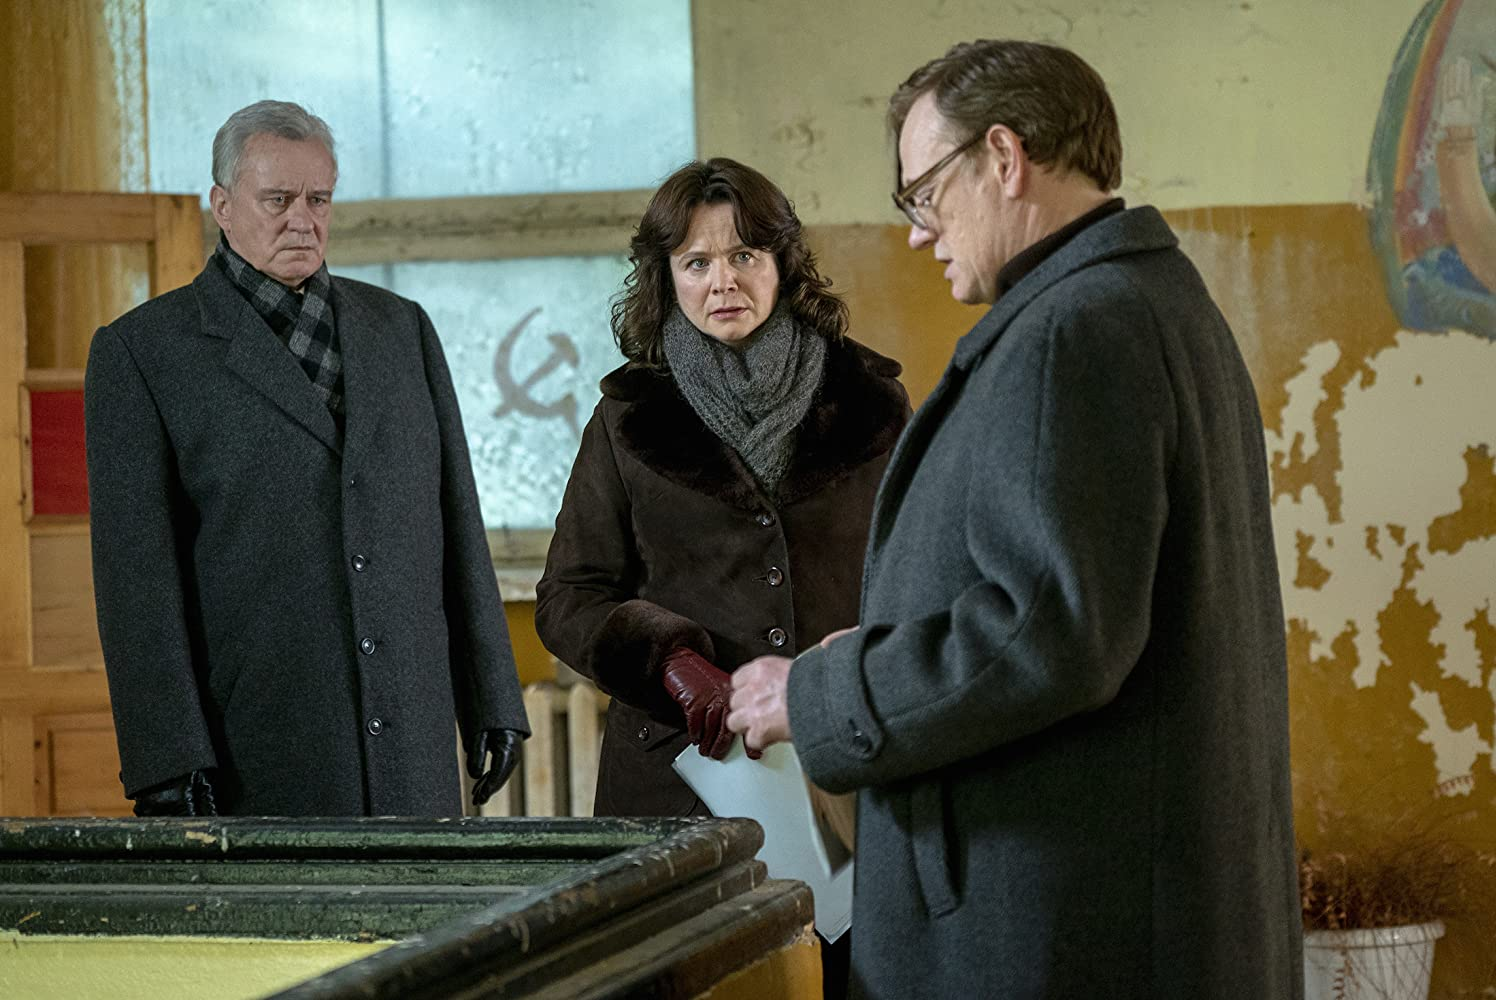 Stellan Skarsgård, Emily Watson, and Jared Harris in Chernobyl (2019)